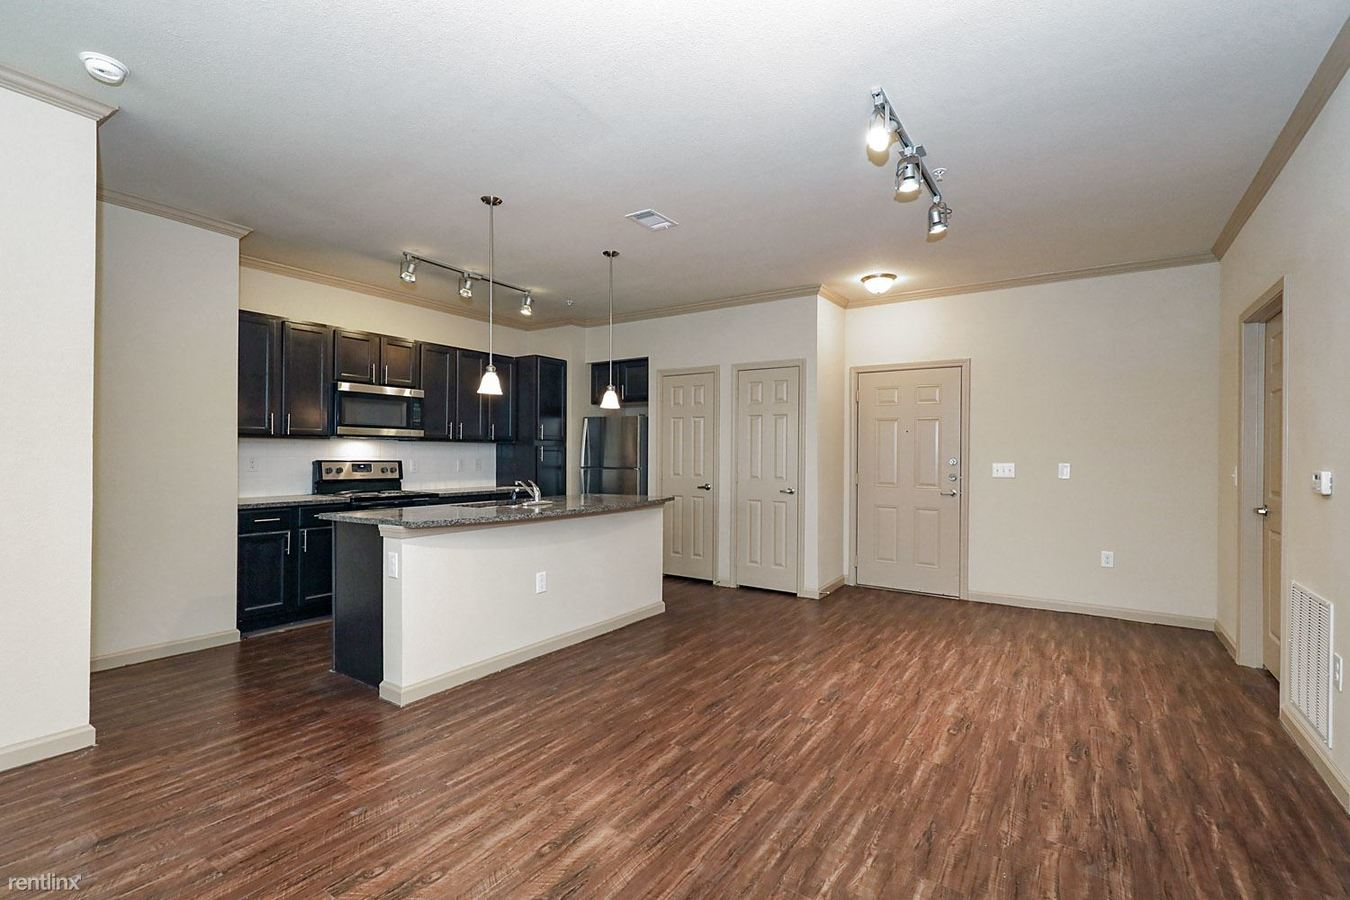 2 Bedrooms 2 Bathrooms Apartment for rent at 3750 National Pkwy in Mansfield, TX